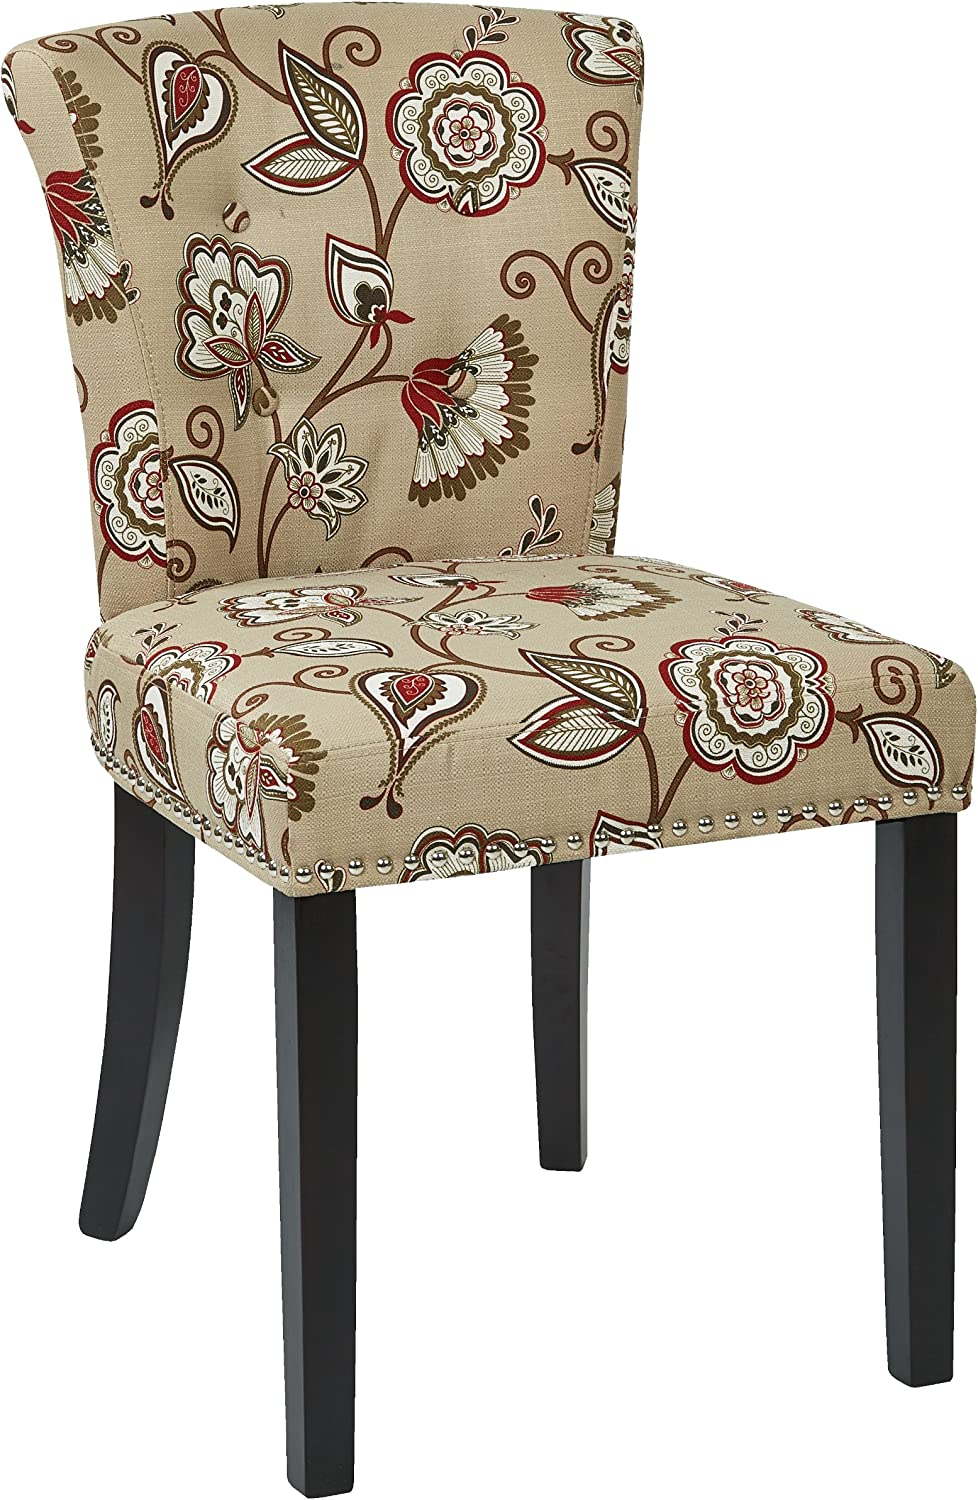 Osp Home Furnishings Kendal Tufted And Inner Spring Chair With Nailhead Detail And Solid Wood Legs Avignon Bisque Fabric Chairs Amazon Com